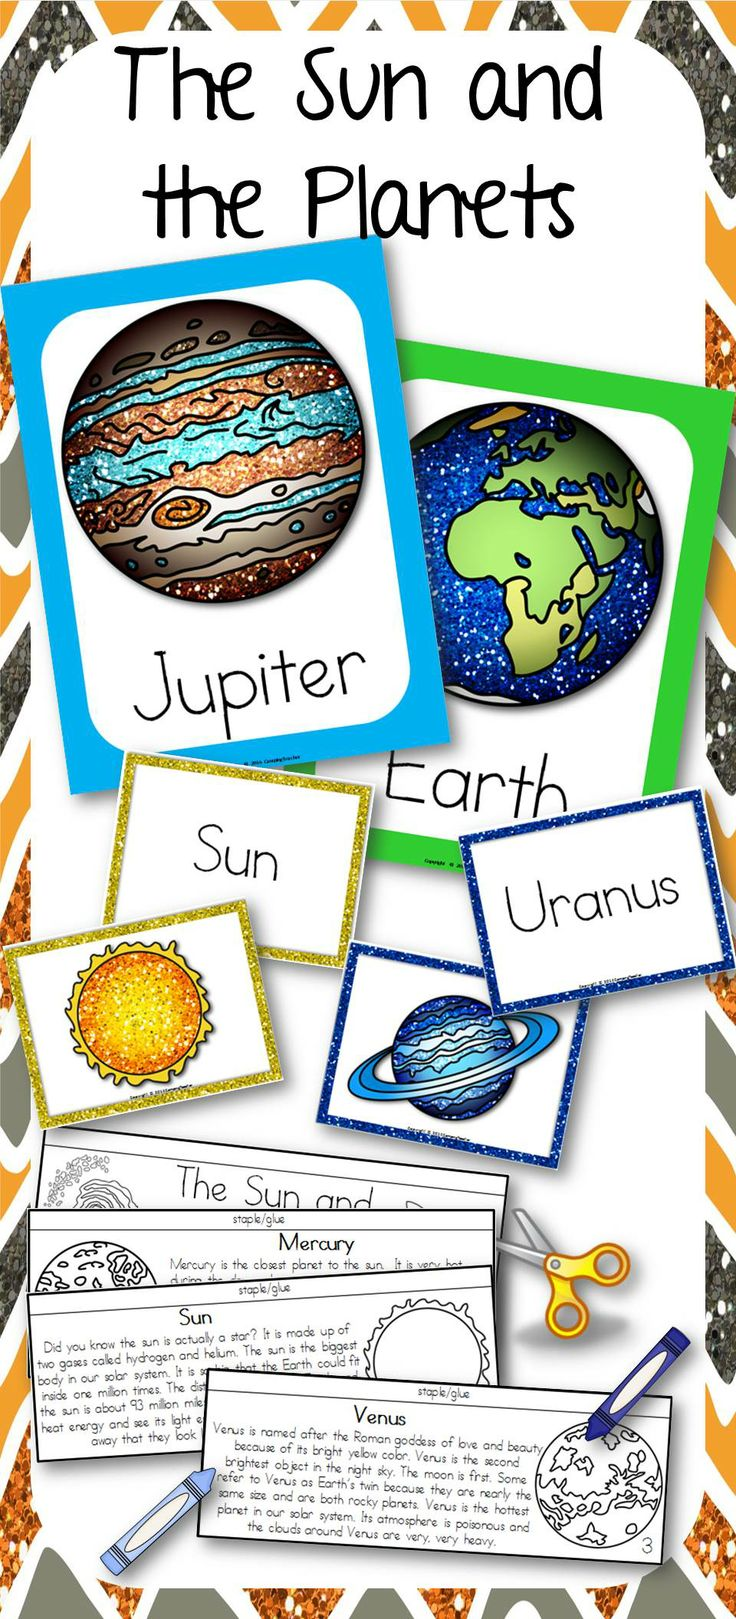 The Sun and the Planets - Science posters, matching center cards, and flip book.